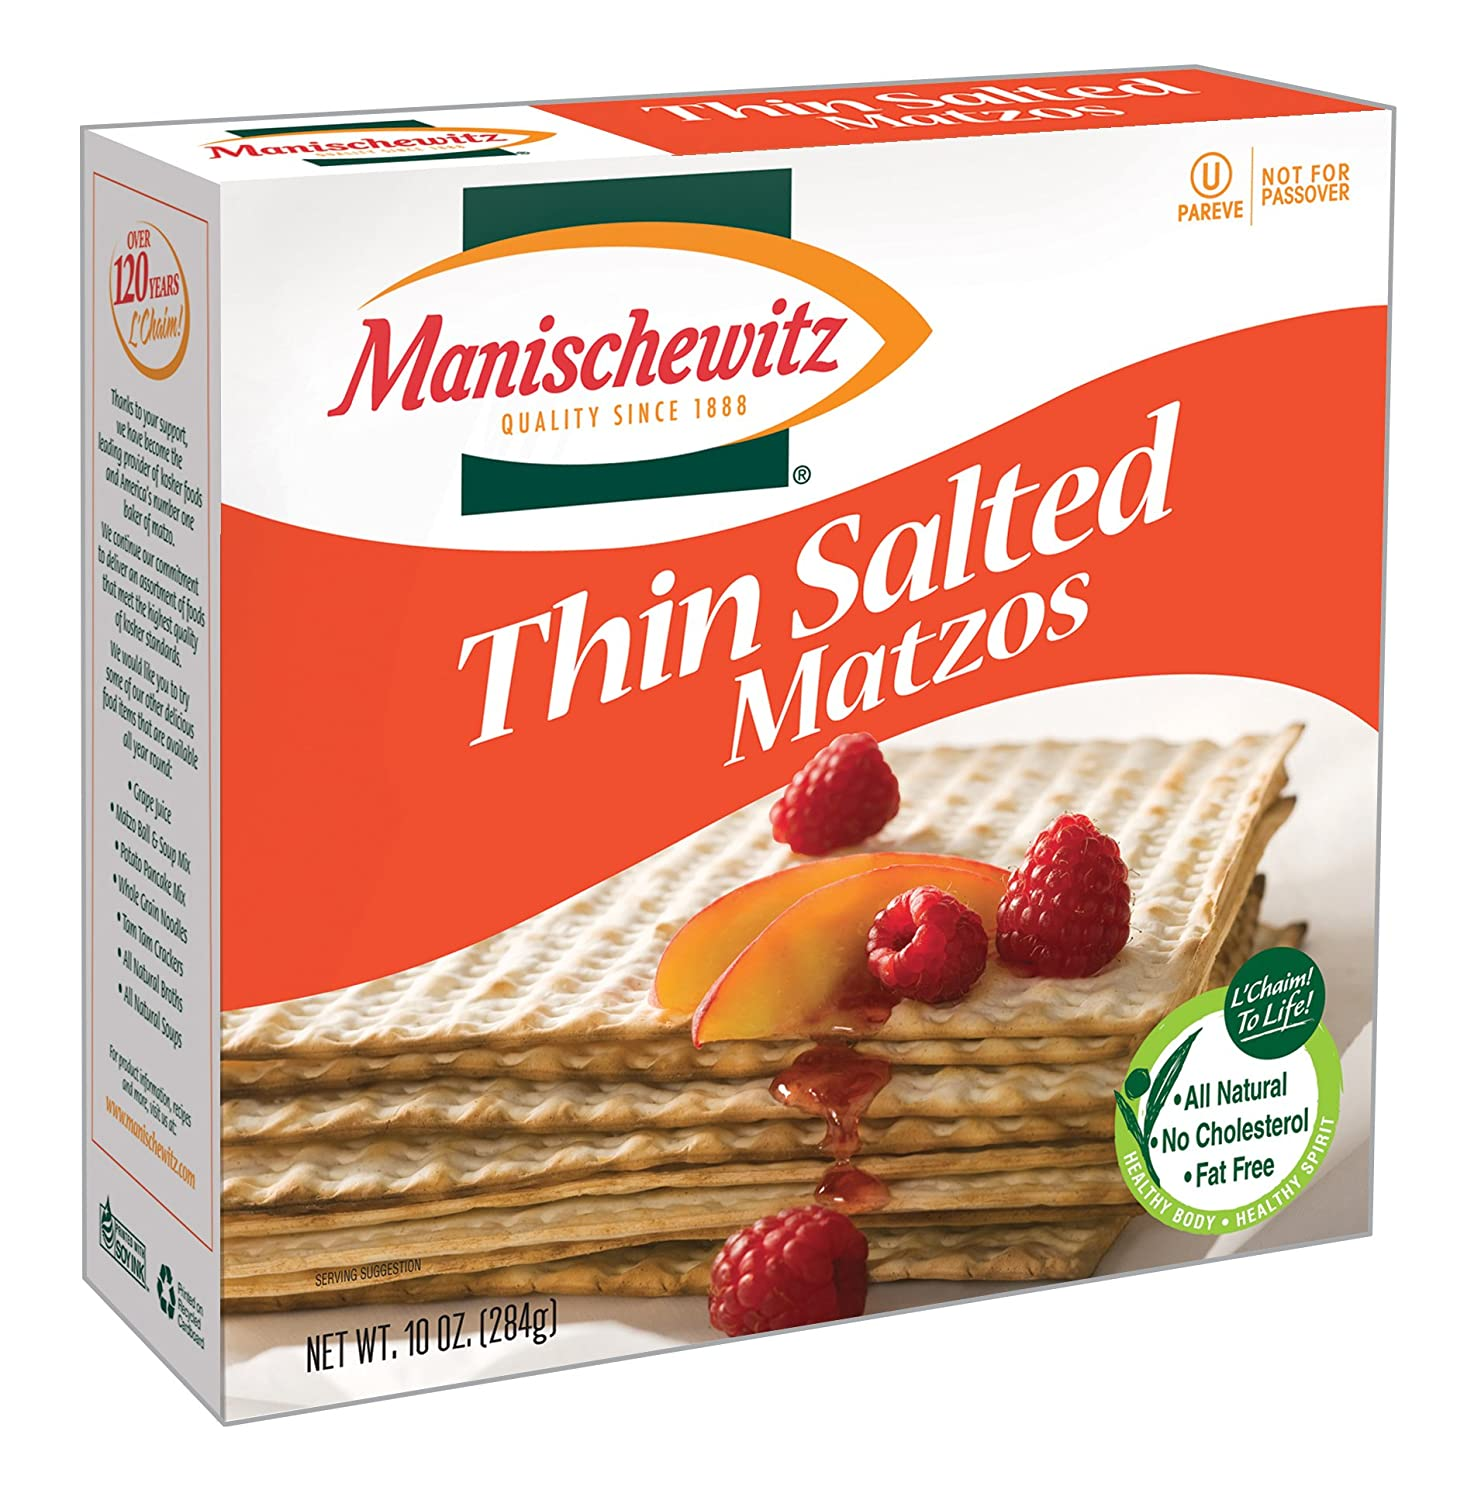 MANISCHEWITZ Thin New products world's Quantity limited highest quality popular Salted Matzo 10-Ounce Pack 8 of Boxes